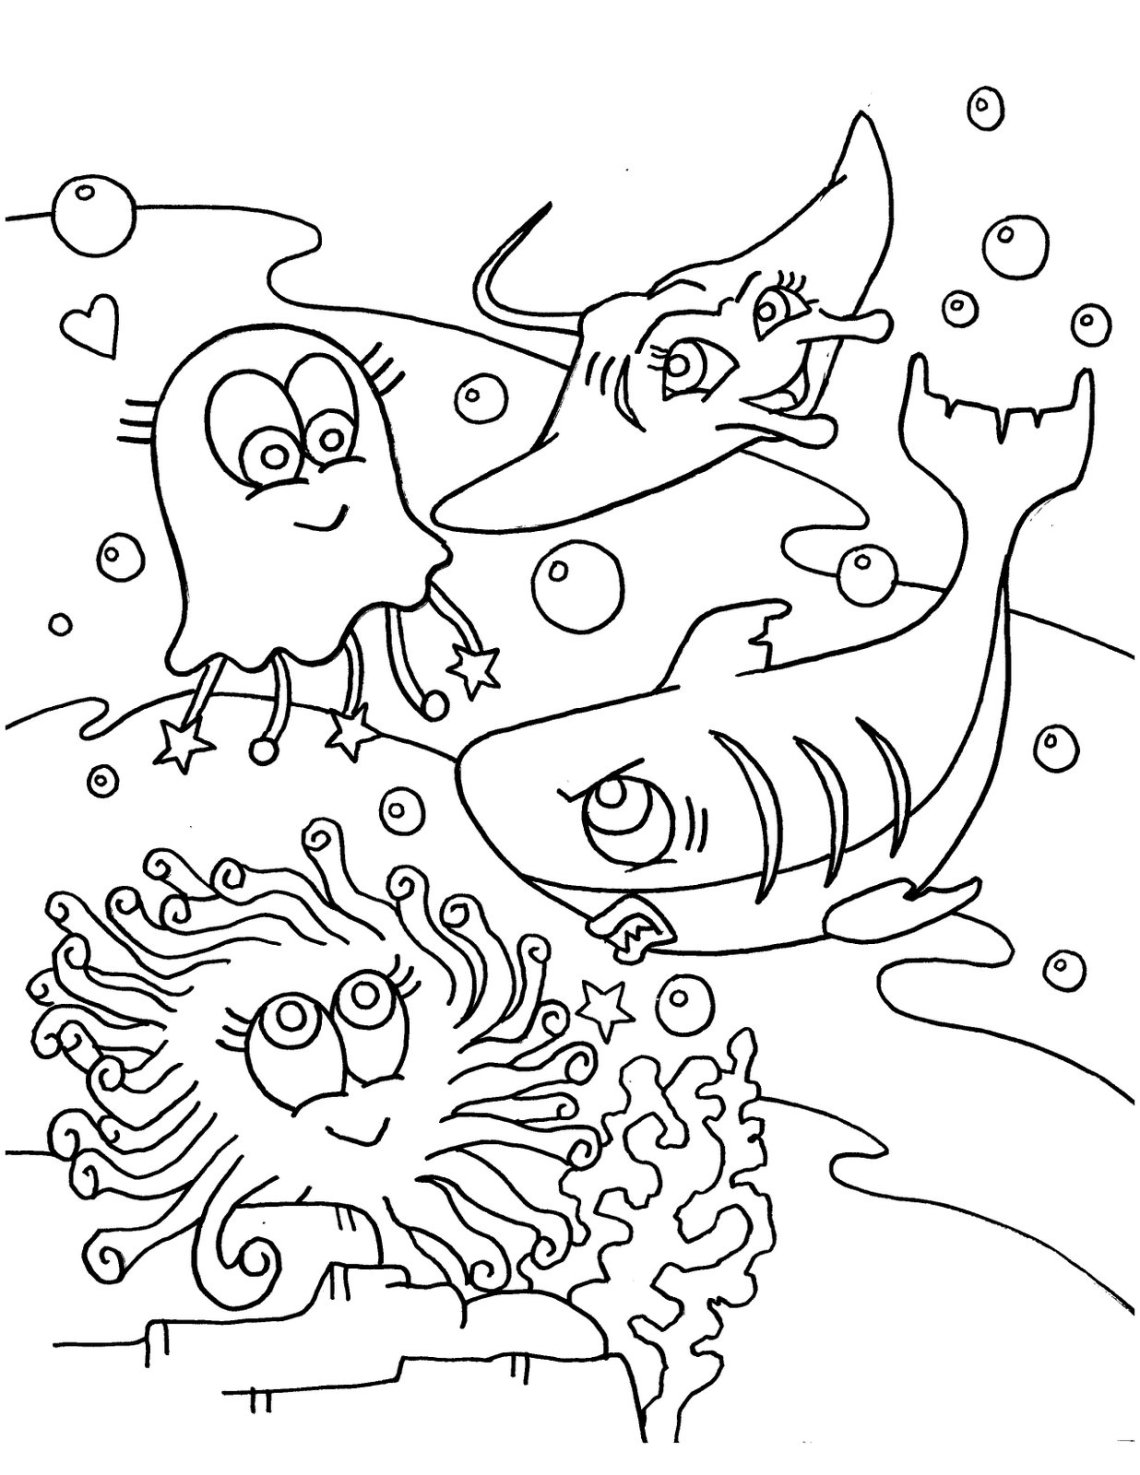 Free Printable Ocean Coloring Pages For Kids | free printable colouring pages of sea animals